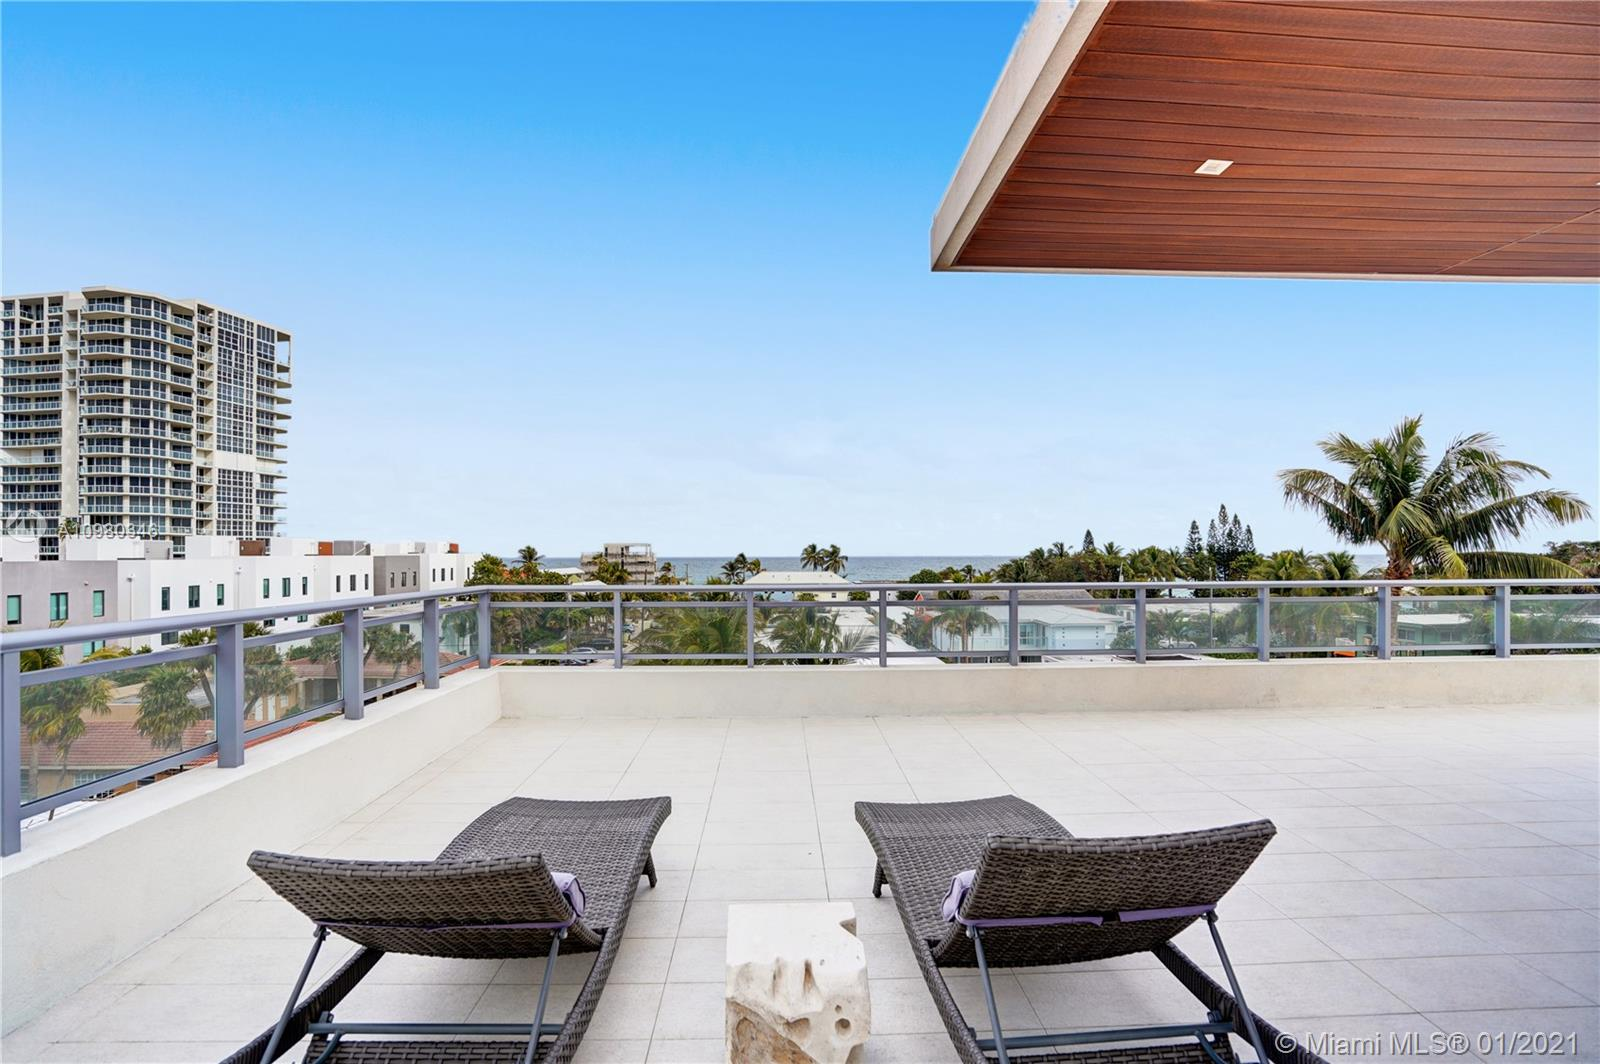 Ocean View from your rooftop deck.